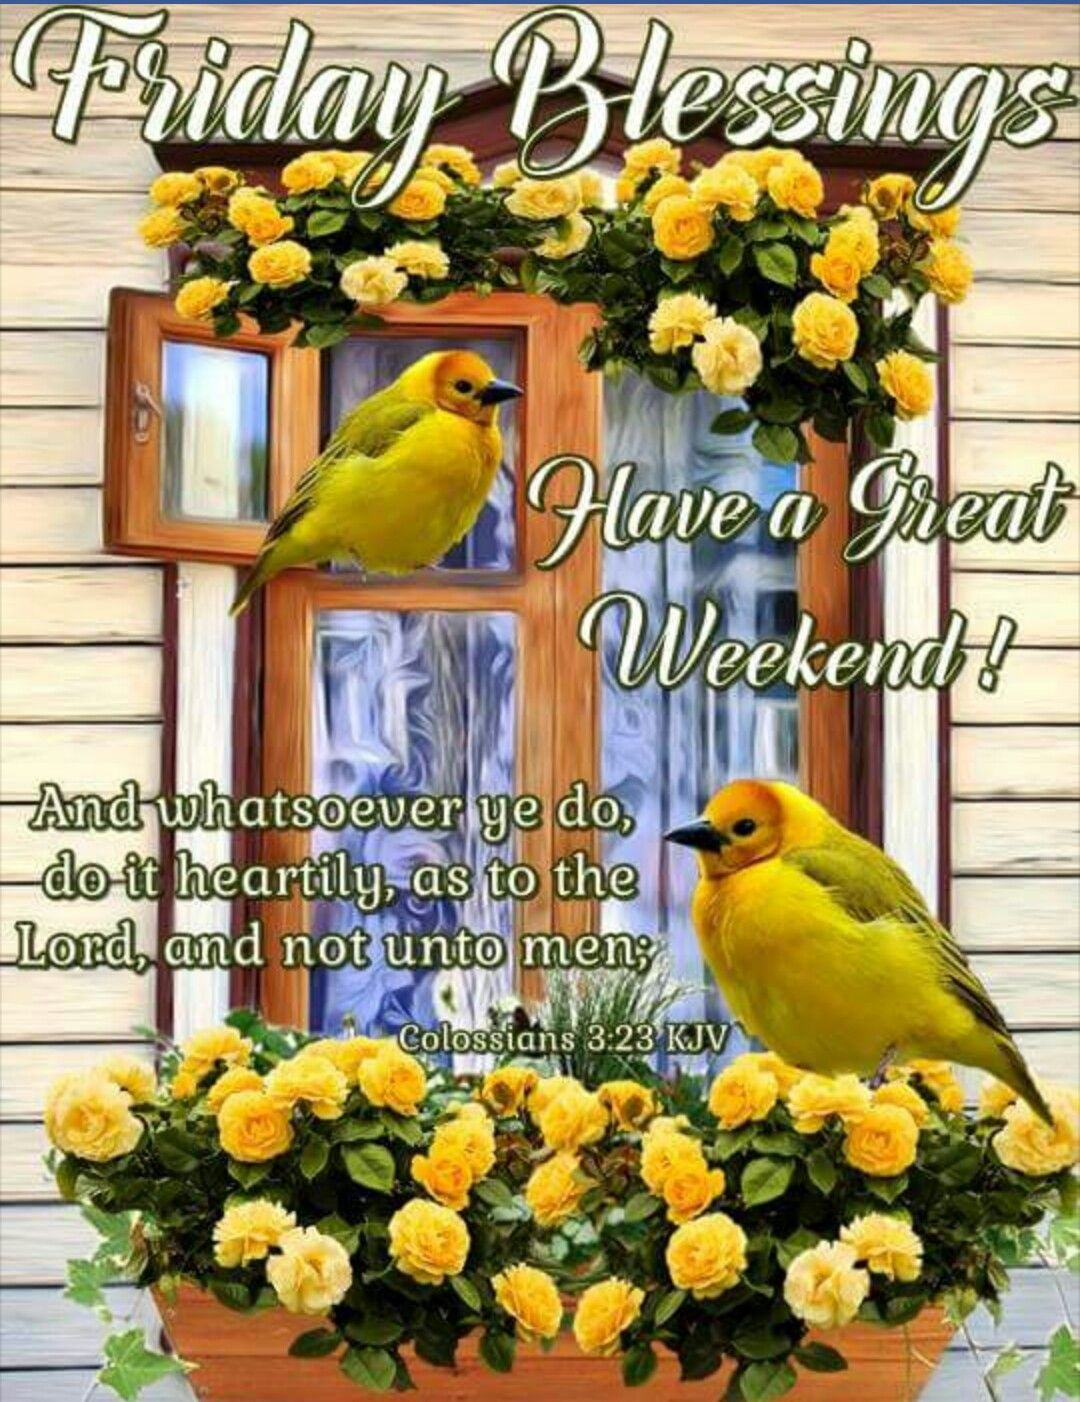 Morning Weekend Blessings Good Quotes Friday